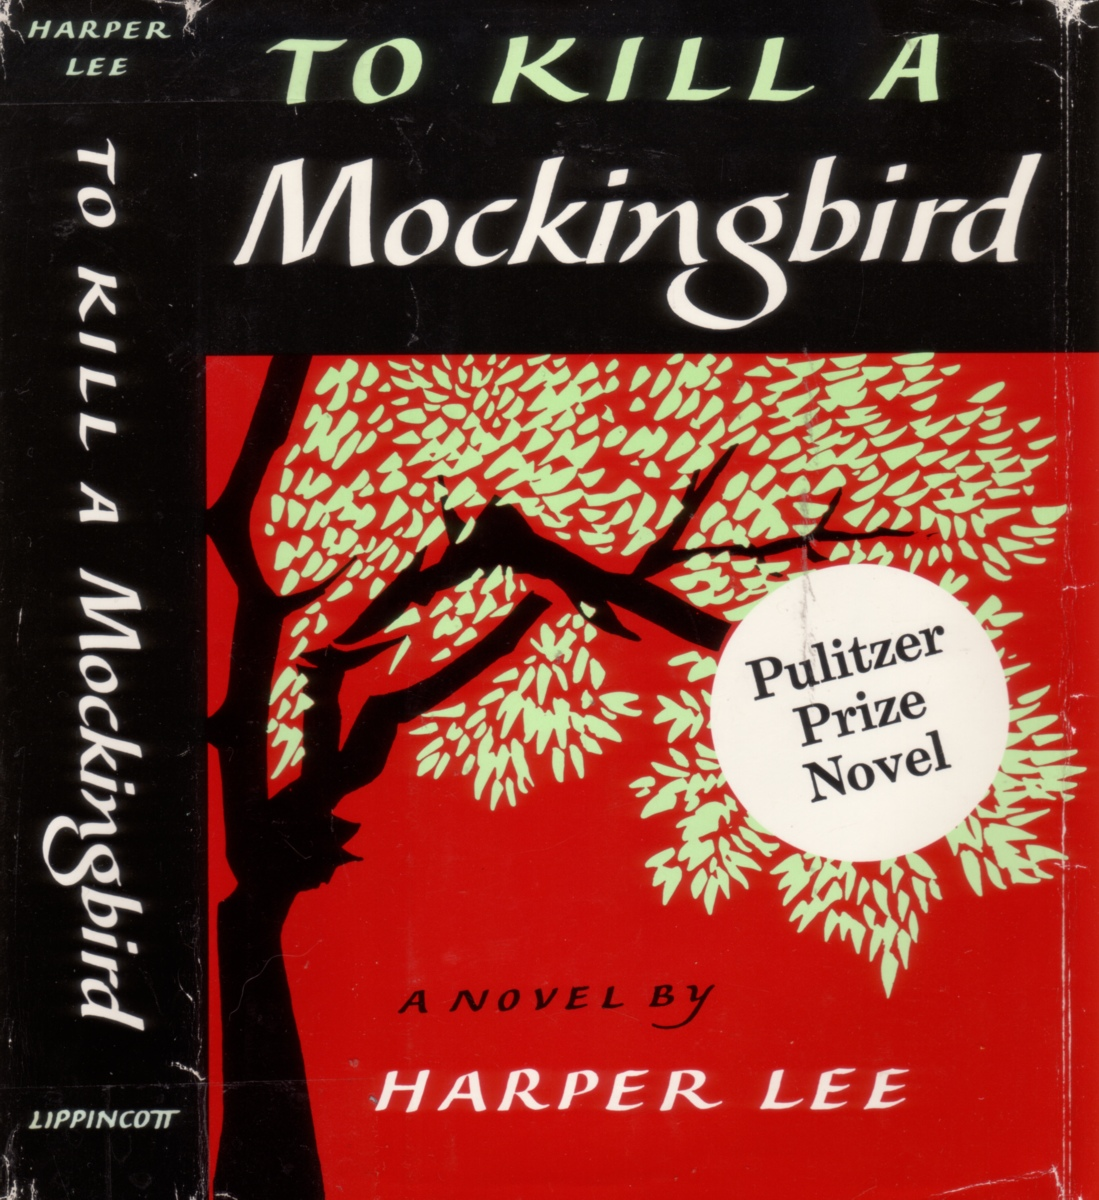 a summary of a scene in the novel to kill a mockingbird by harper lee To kill a mockingbird is a novel by harper lee published in 1960 it was immediately successful, winning the pulitzer prize, and has become a classic of modern american literature it was immediately successful, winning the pulitzer prize, and has become a classic of modern american literature.